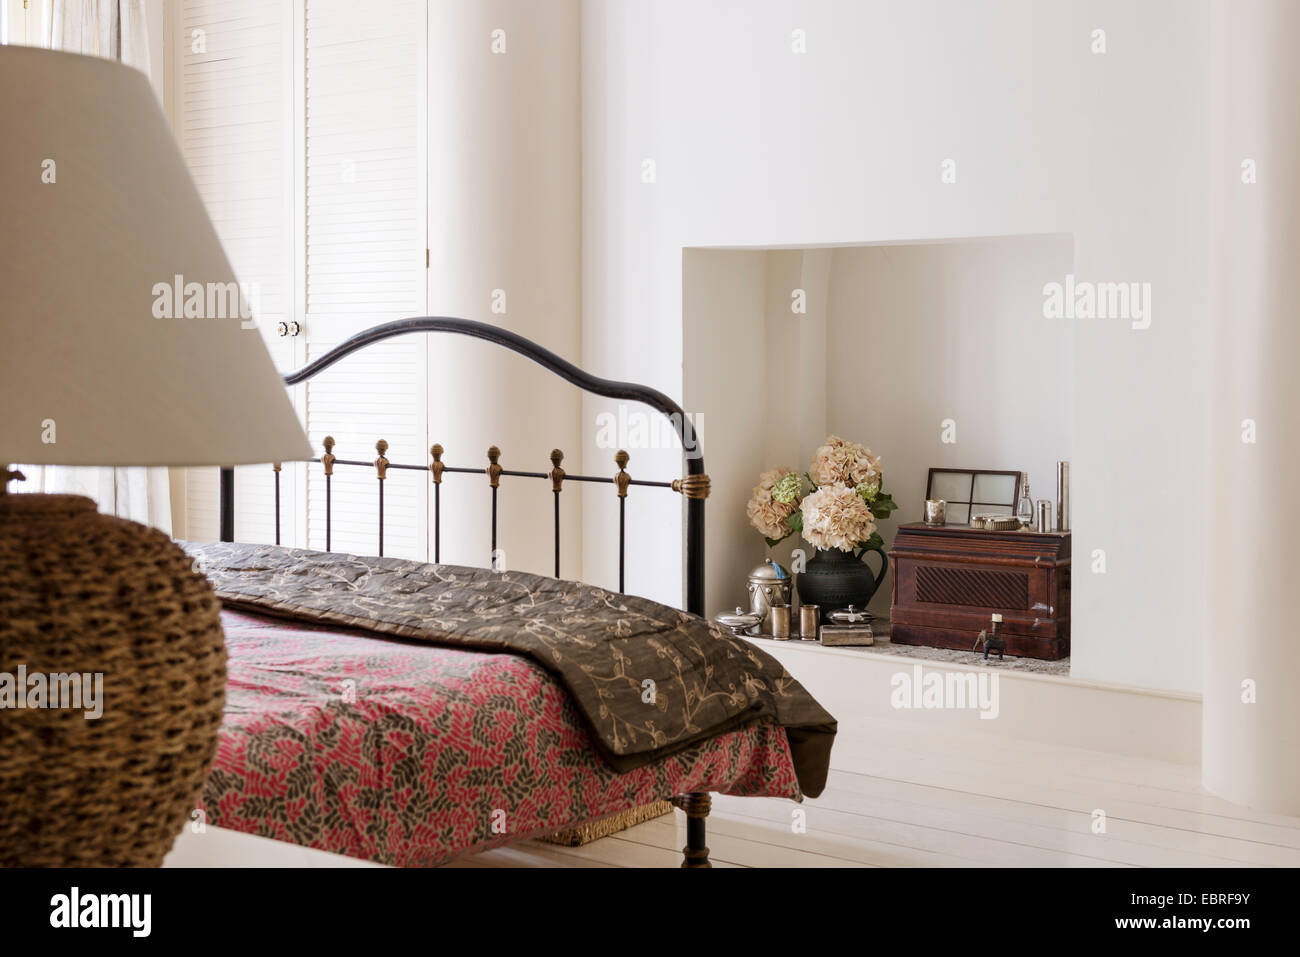 Patterned quilt on metal framed double bed - Stock Image